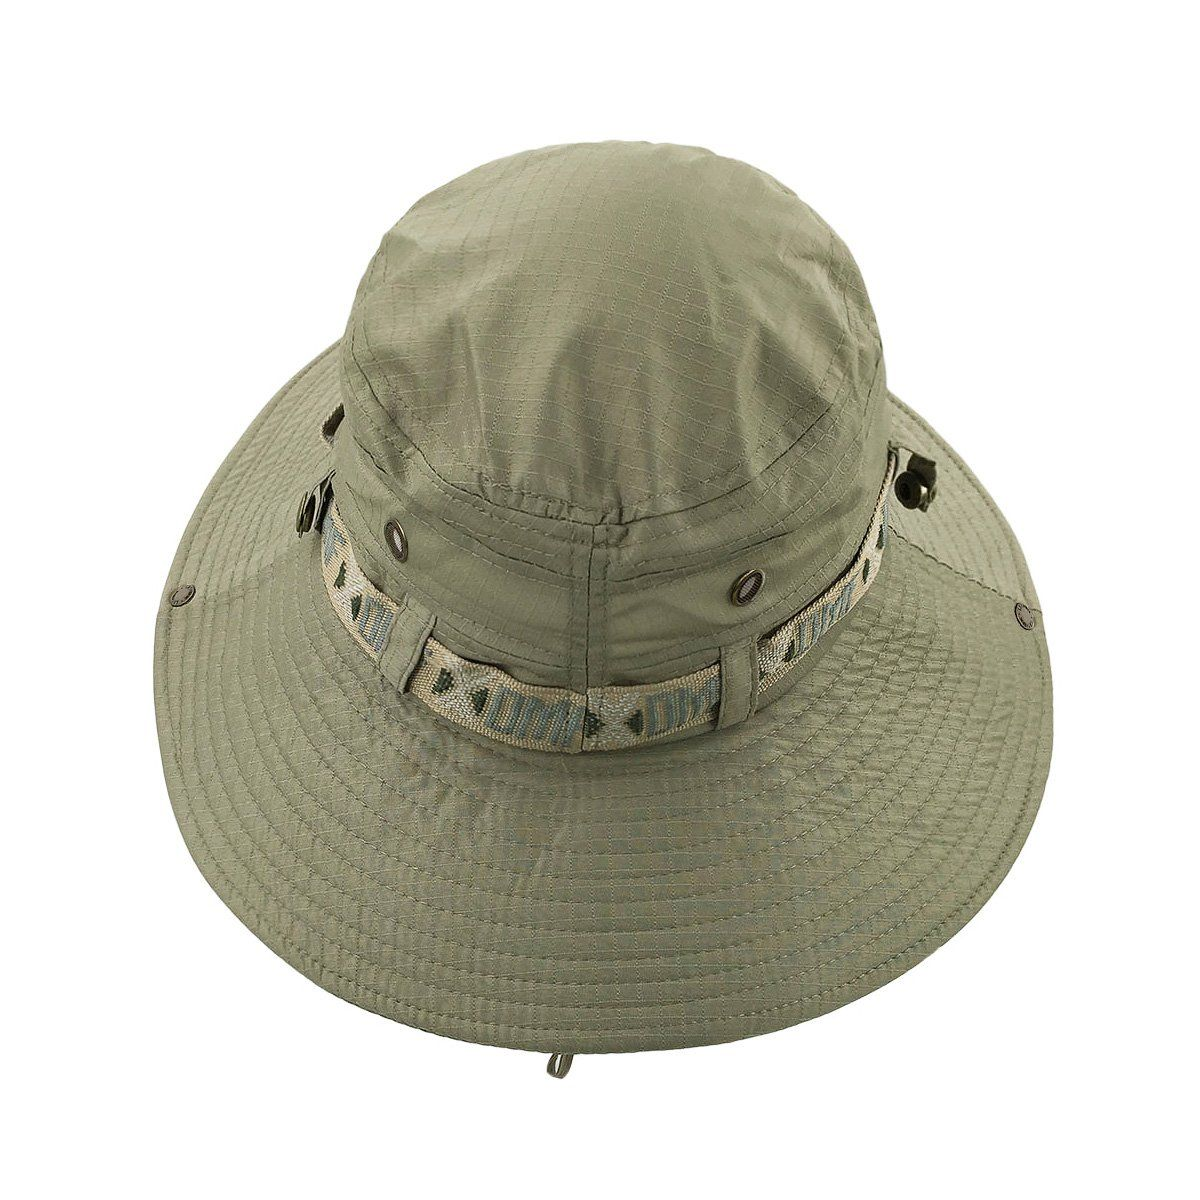 59c668314c4c1 Canoe Camping Gear    LETHMIK Fishing Sun Boonie Hat Waterproof Summer UV  Protection Safari Cap Outdoor Hunting Hat     Inspect this outstanding item  by ...